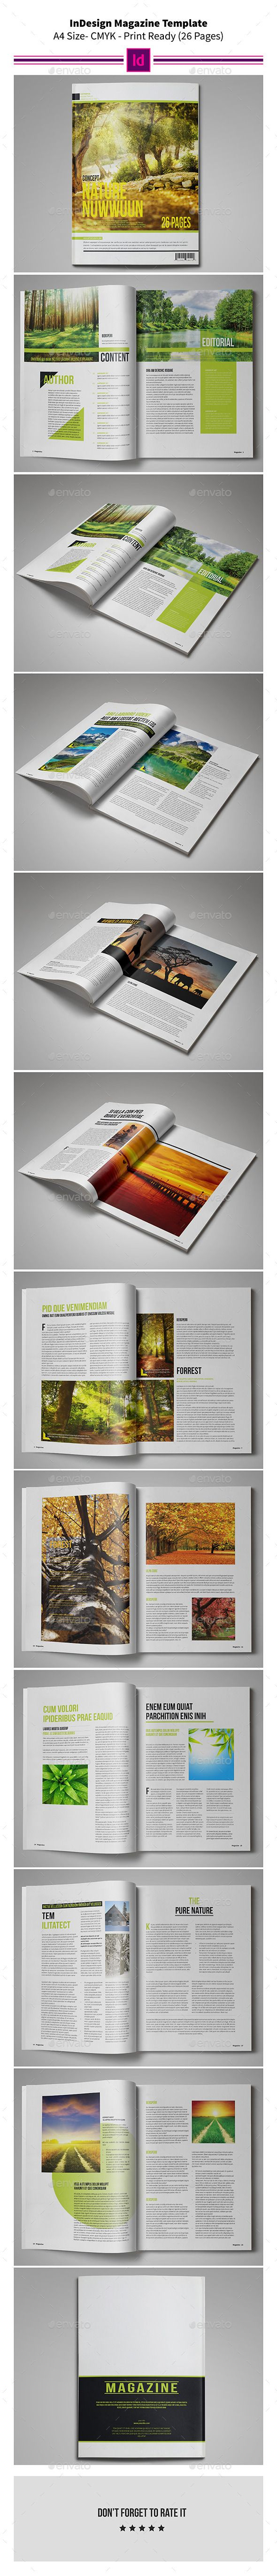 Nature MagazineTemplate 26 Pages